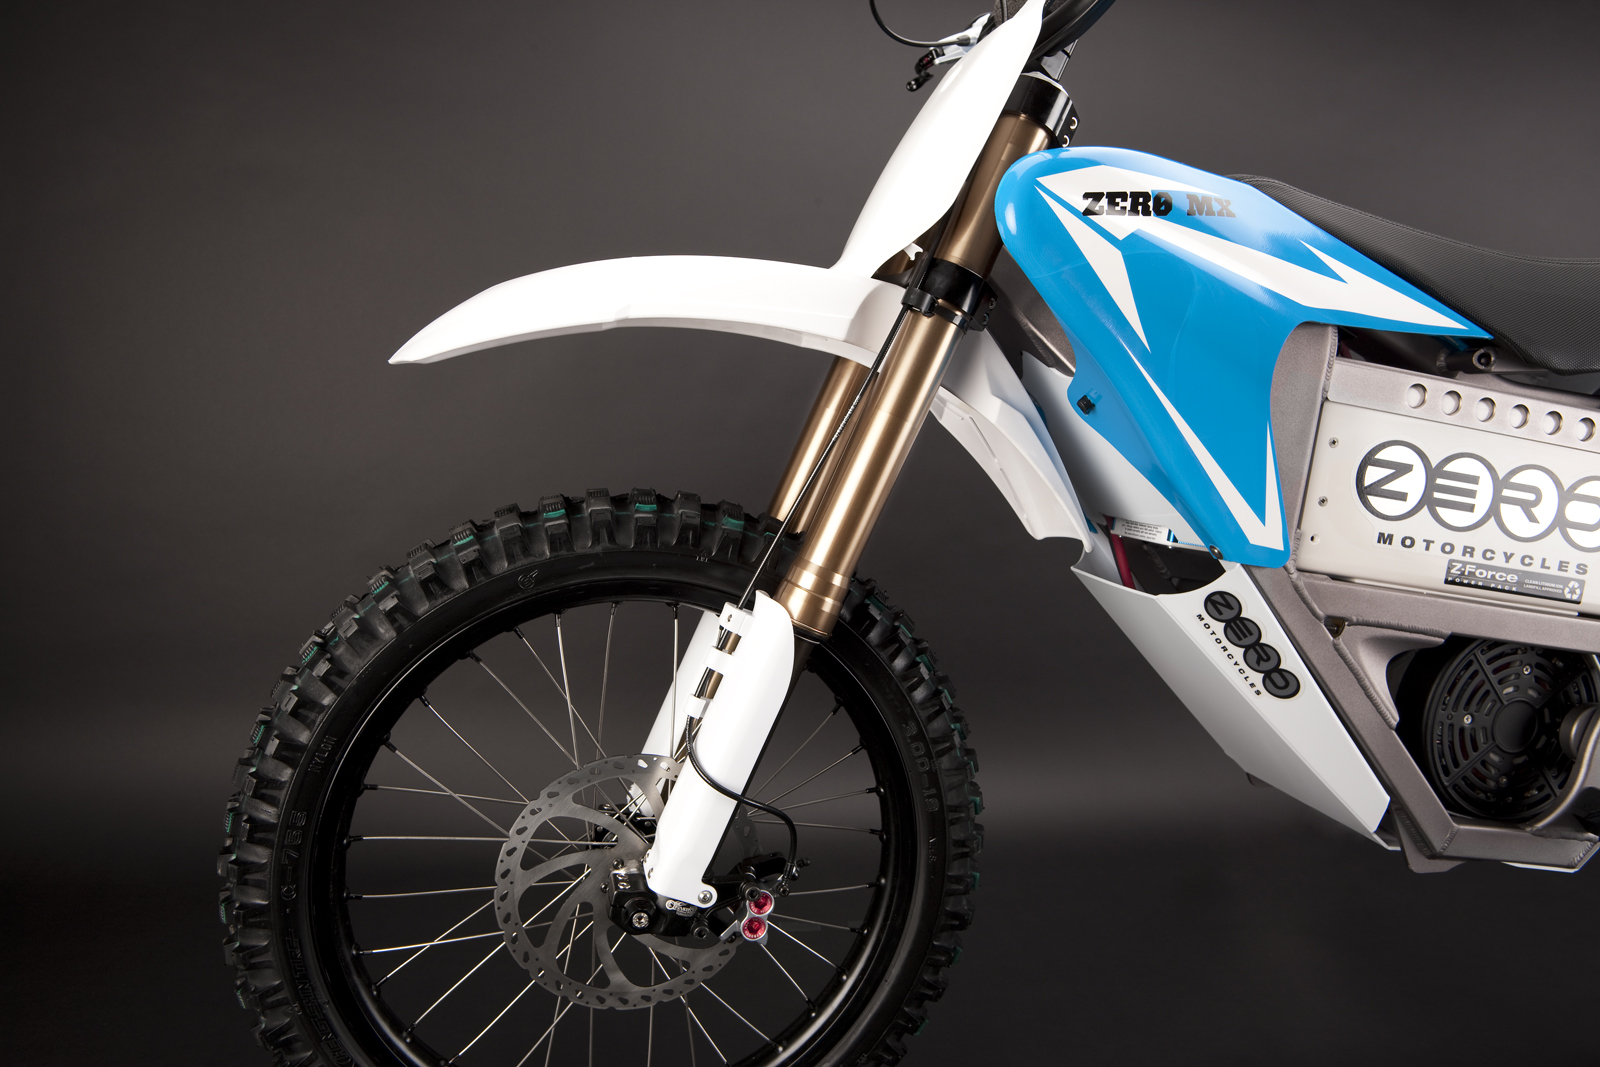 '.2010 Zero MX Electric Motorcycle: Front Fork Blue.'